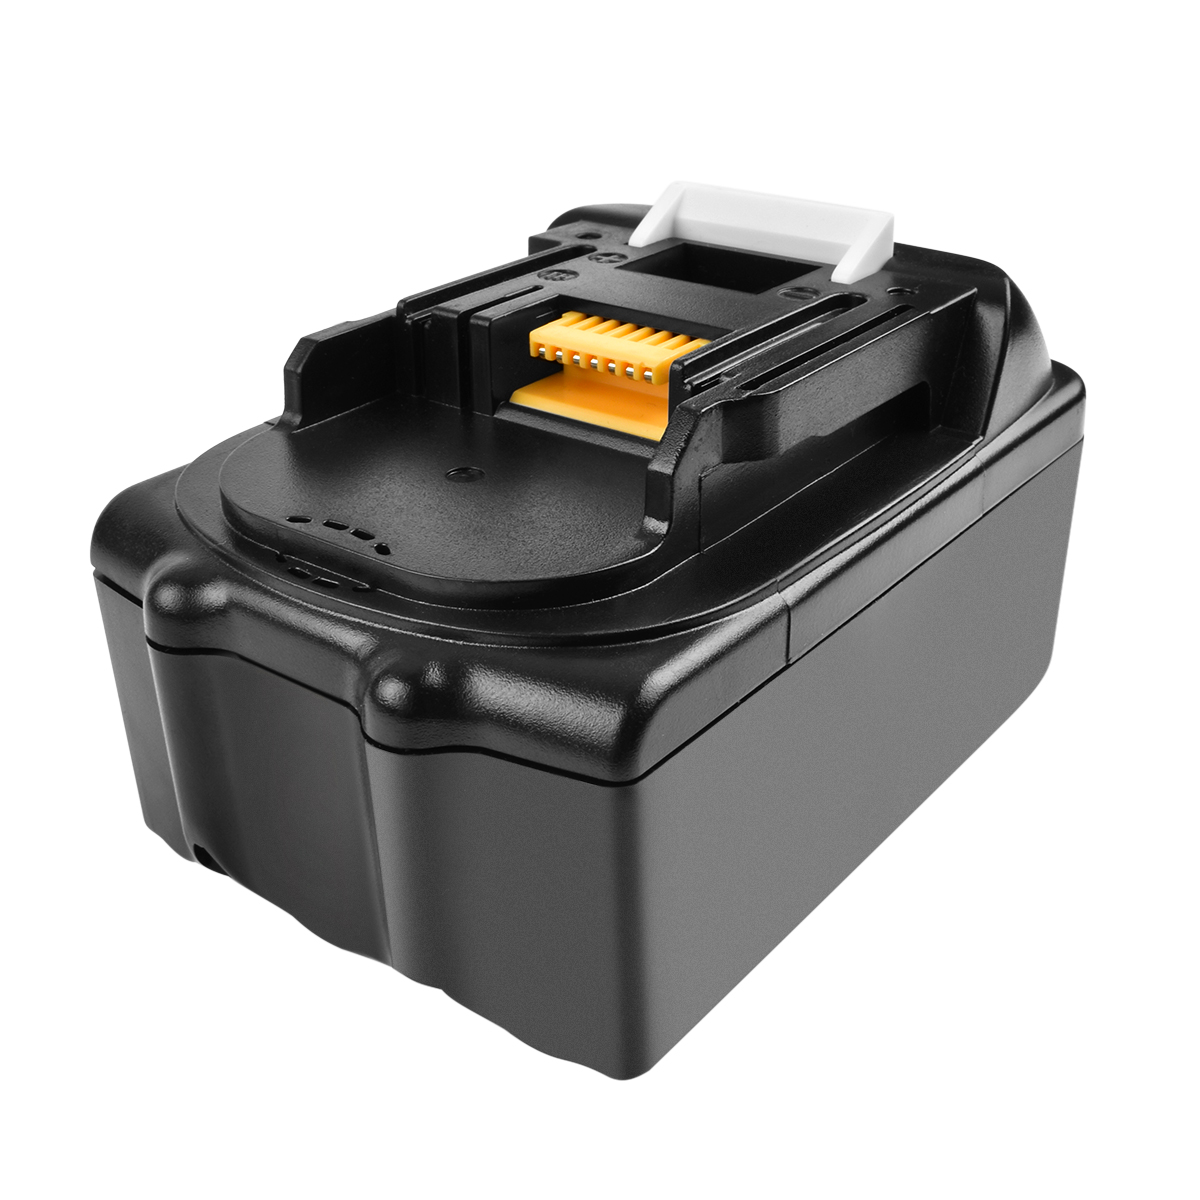 Powtree For Makita High Capacity 18V 6000mAh BL1830 Power Tools Li lon Battery Replacemen LXT400 BL1815 BL1840 BL1850 BL1860 L10 in Replacement Batteries from Consumer Electronics